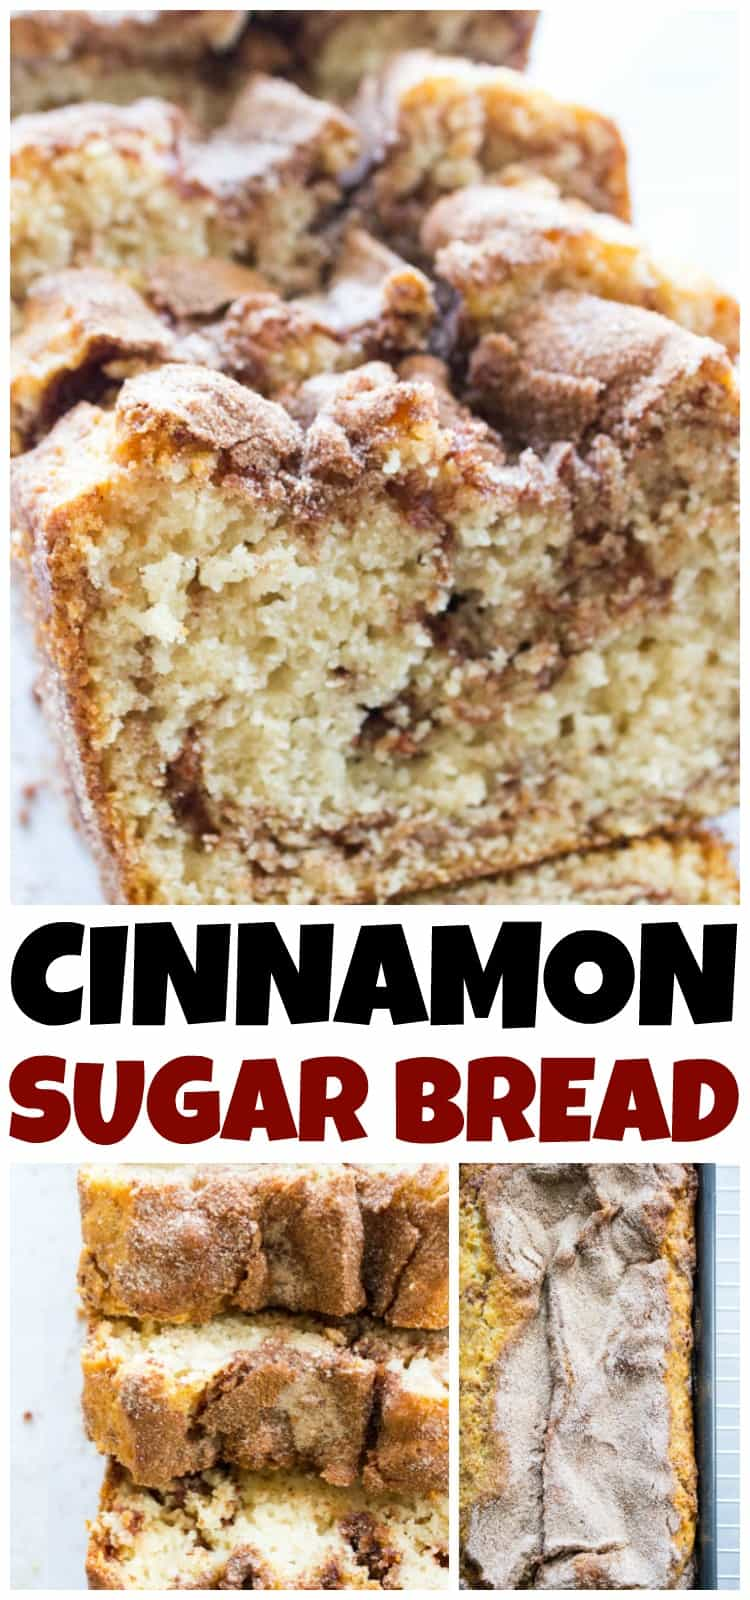 text: Cinnamon sugar bread collage of photos of sliced cinnamon sugar bread